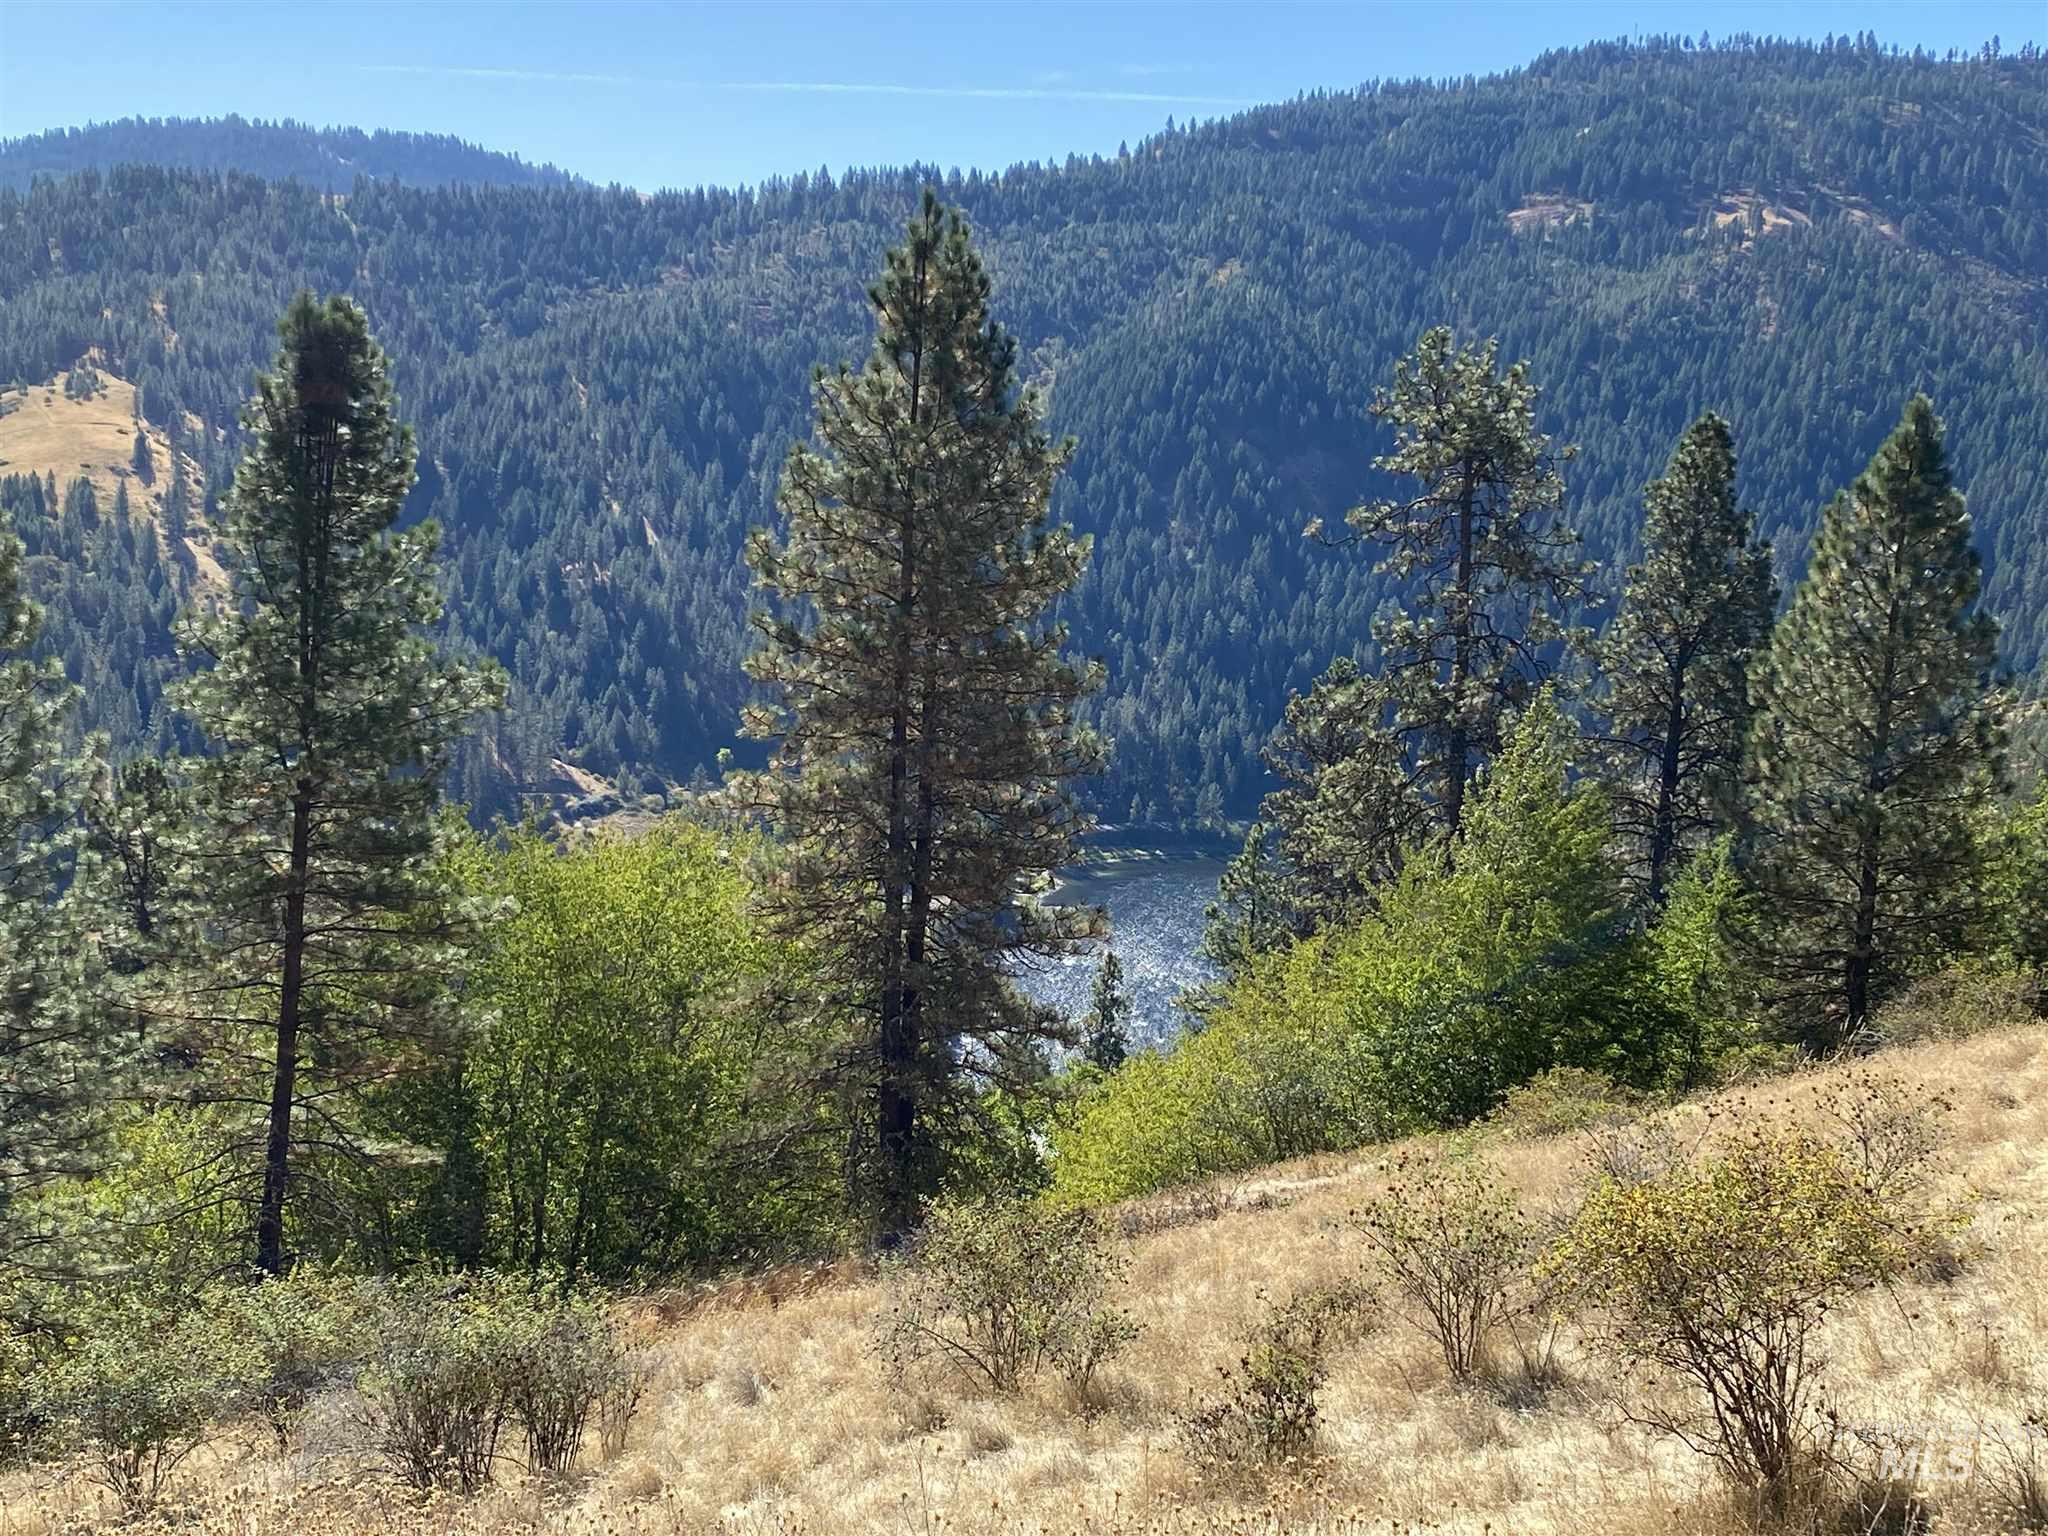 lot 3 blk1 Riverpointe Lane, Lenore, Idaho 83541, Land For Sale, Price $65,000, 319401